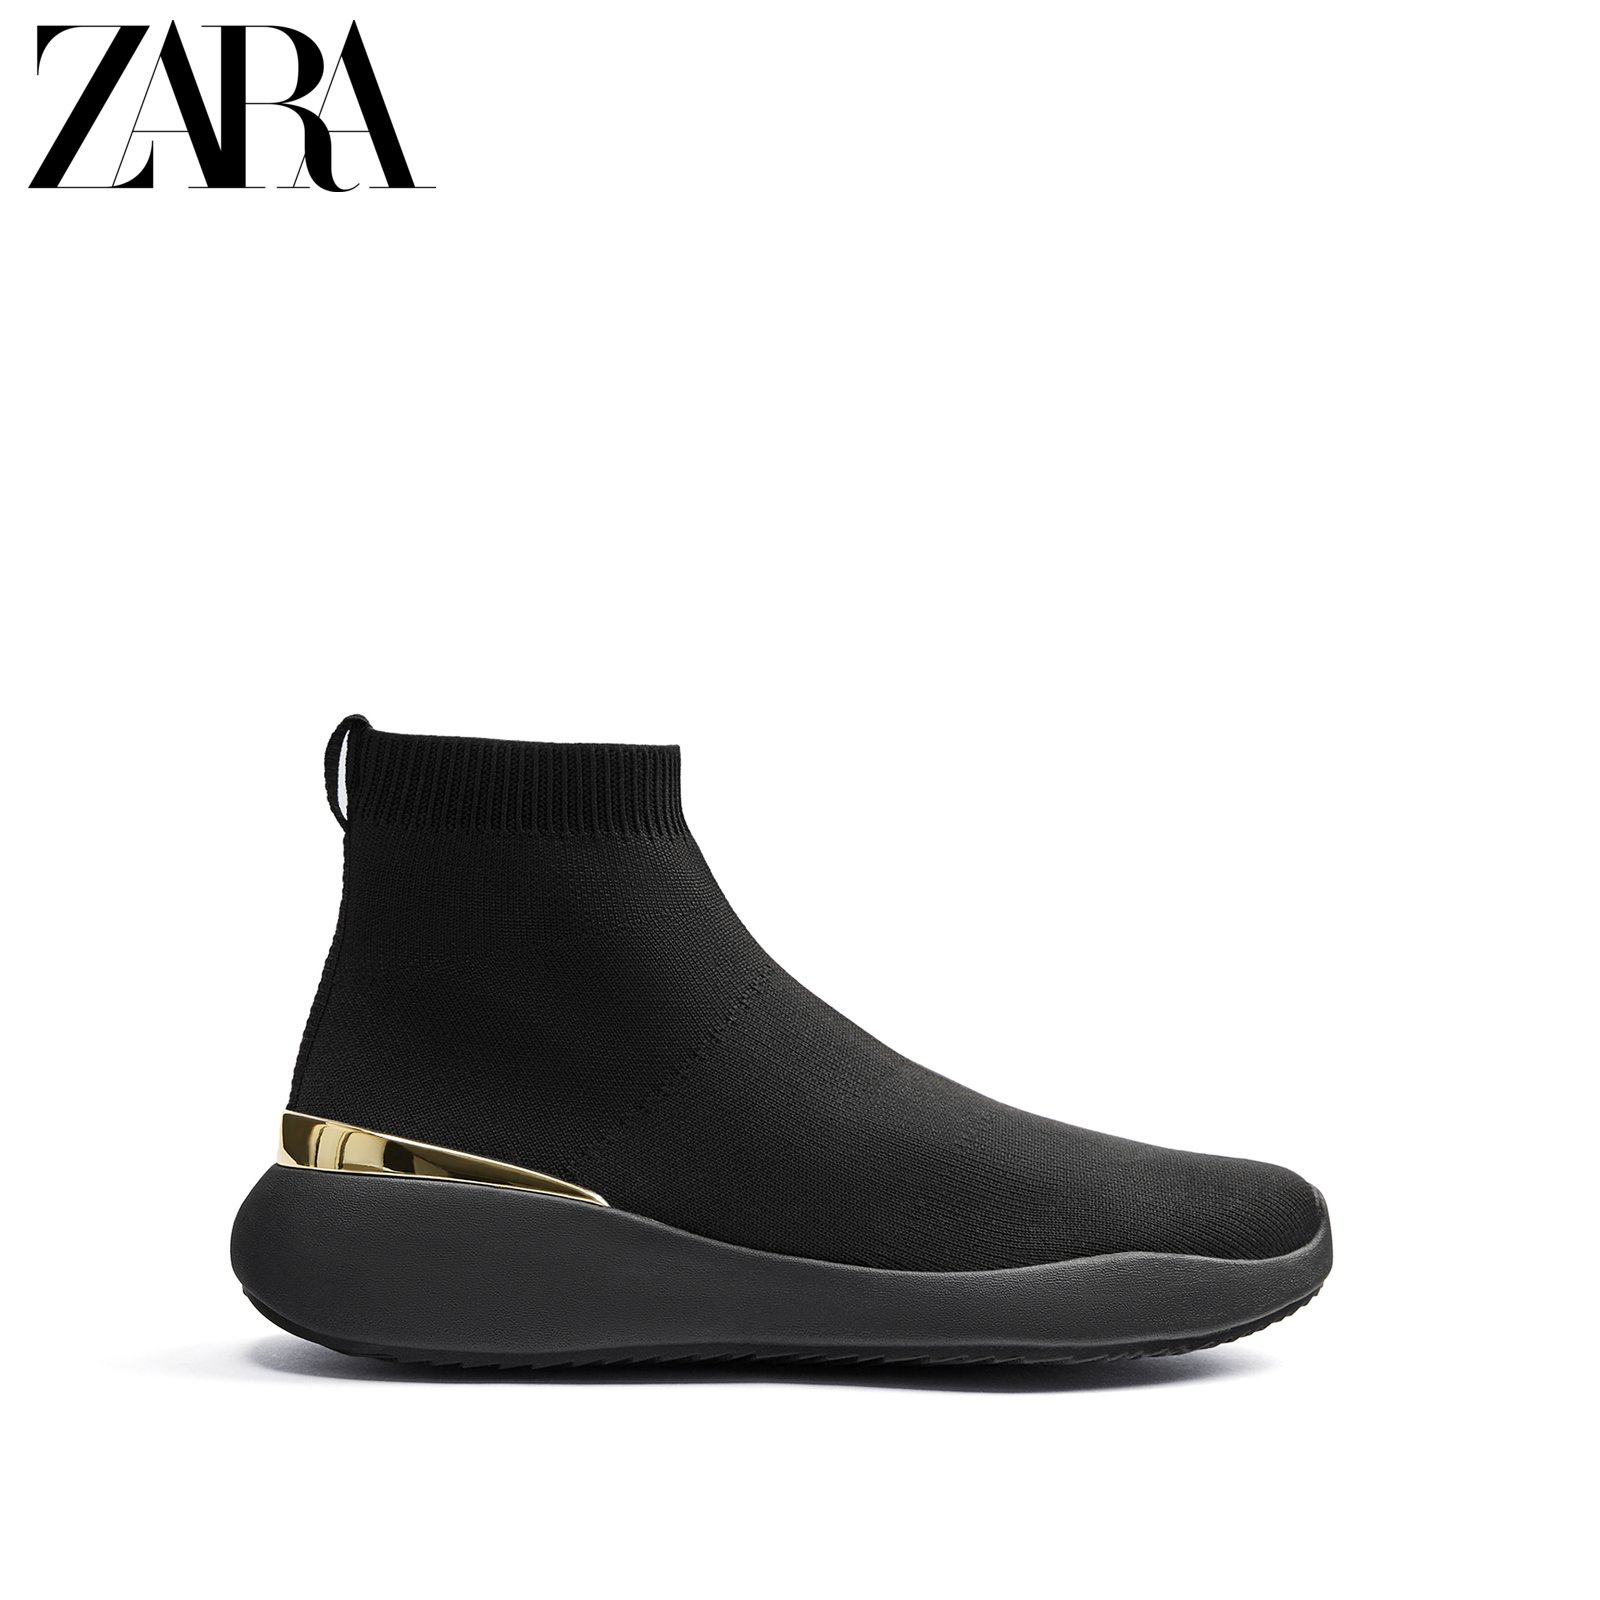 ZARA new men's shoes black inlaid thick-soled socks retro all-match sneakers 12102620040